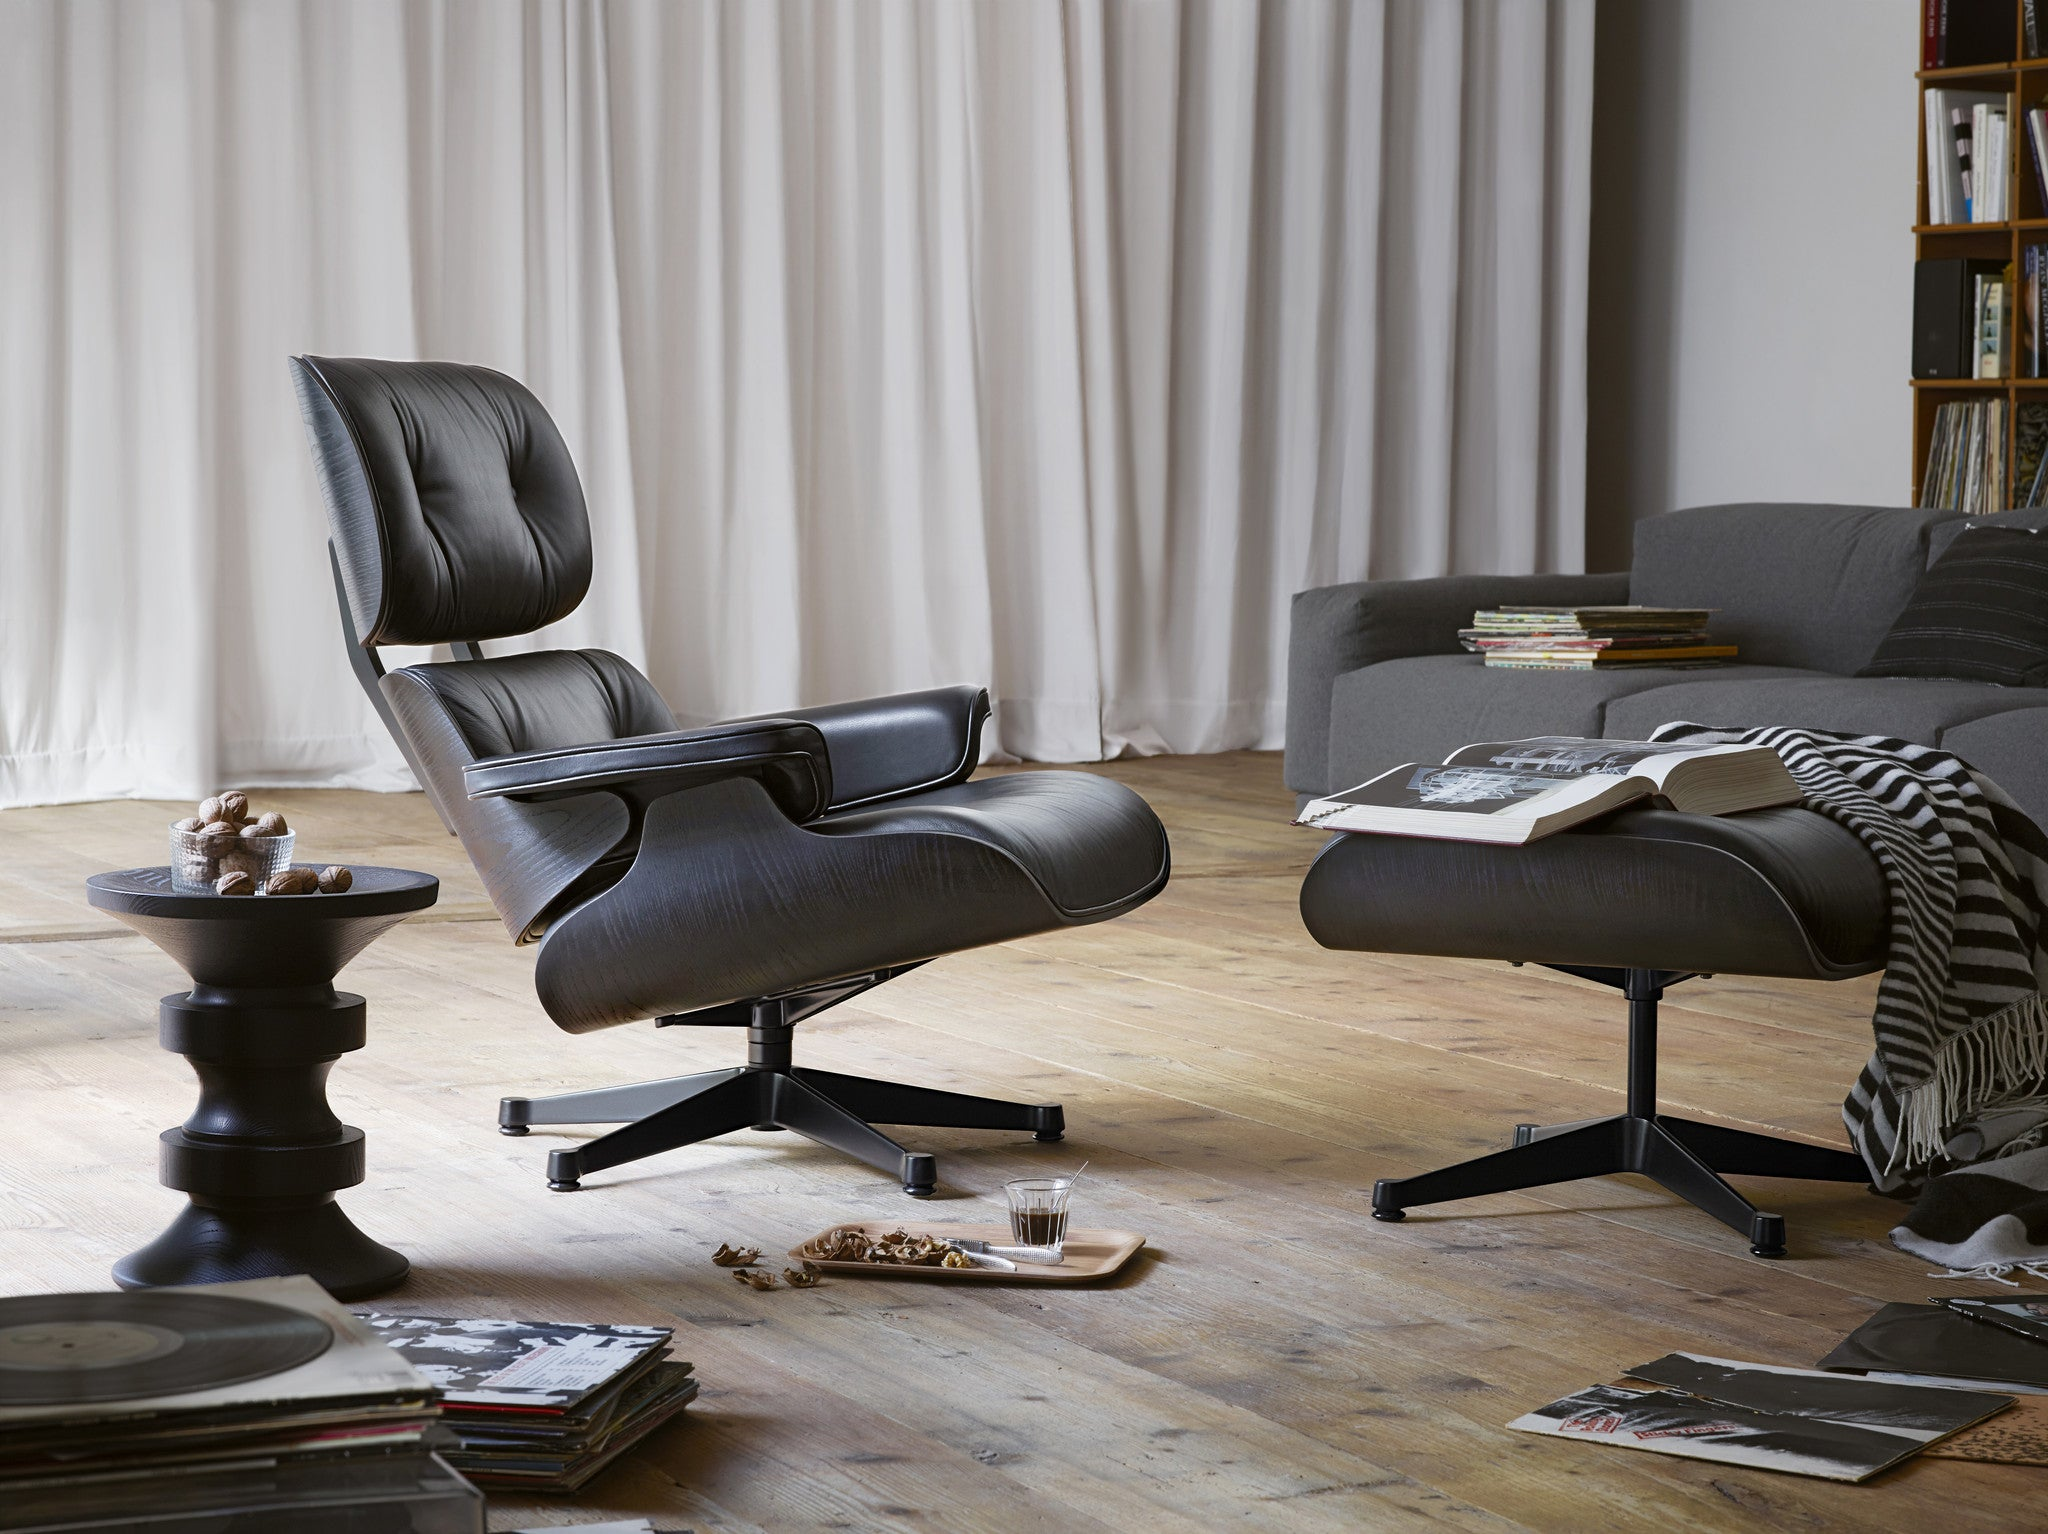 Eames Lounge Chair Black Version Couch Potato Company